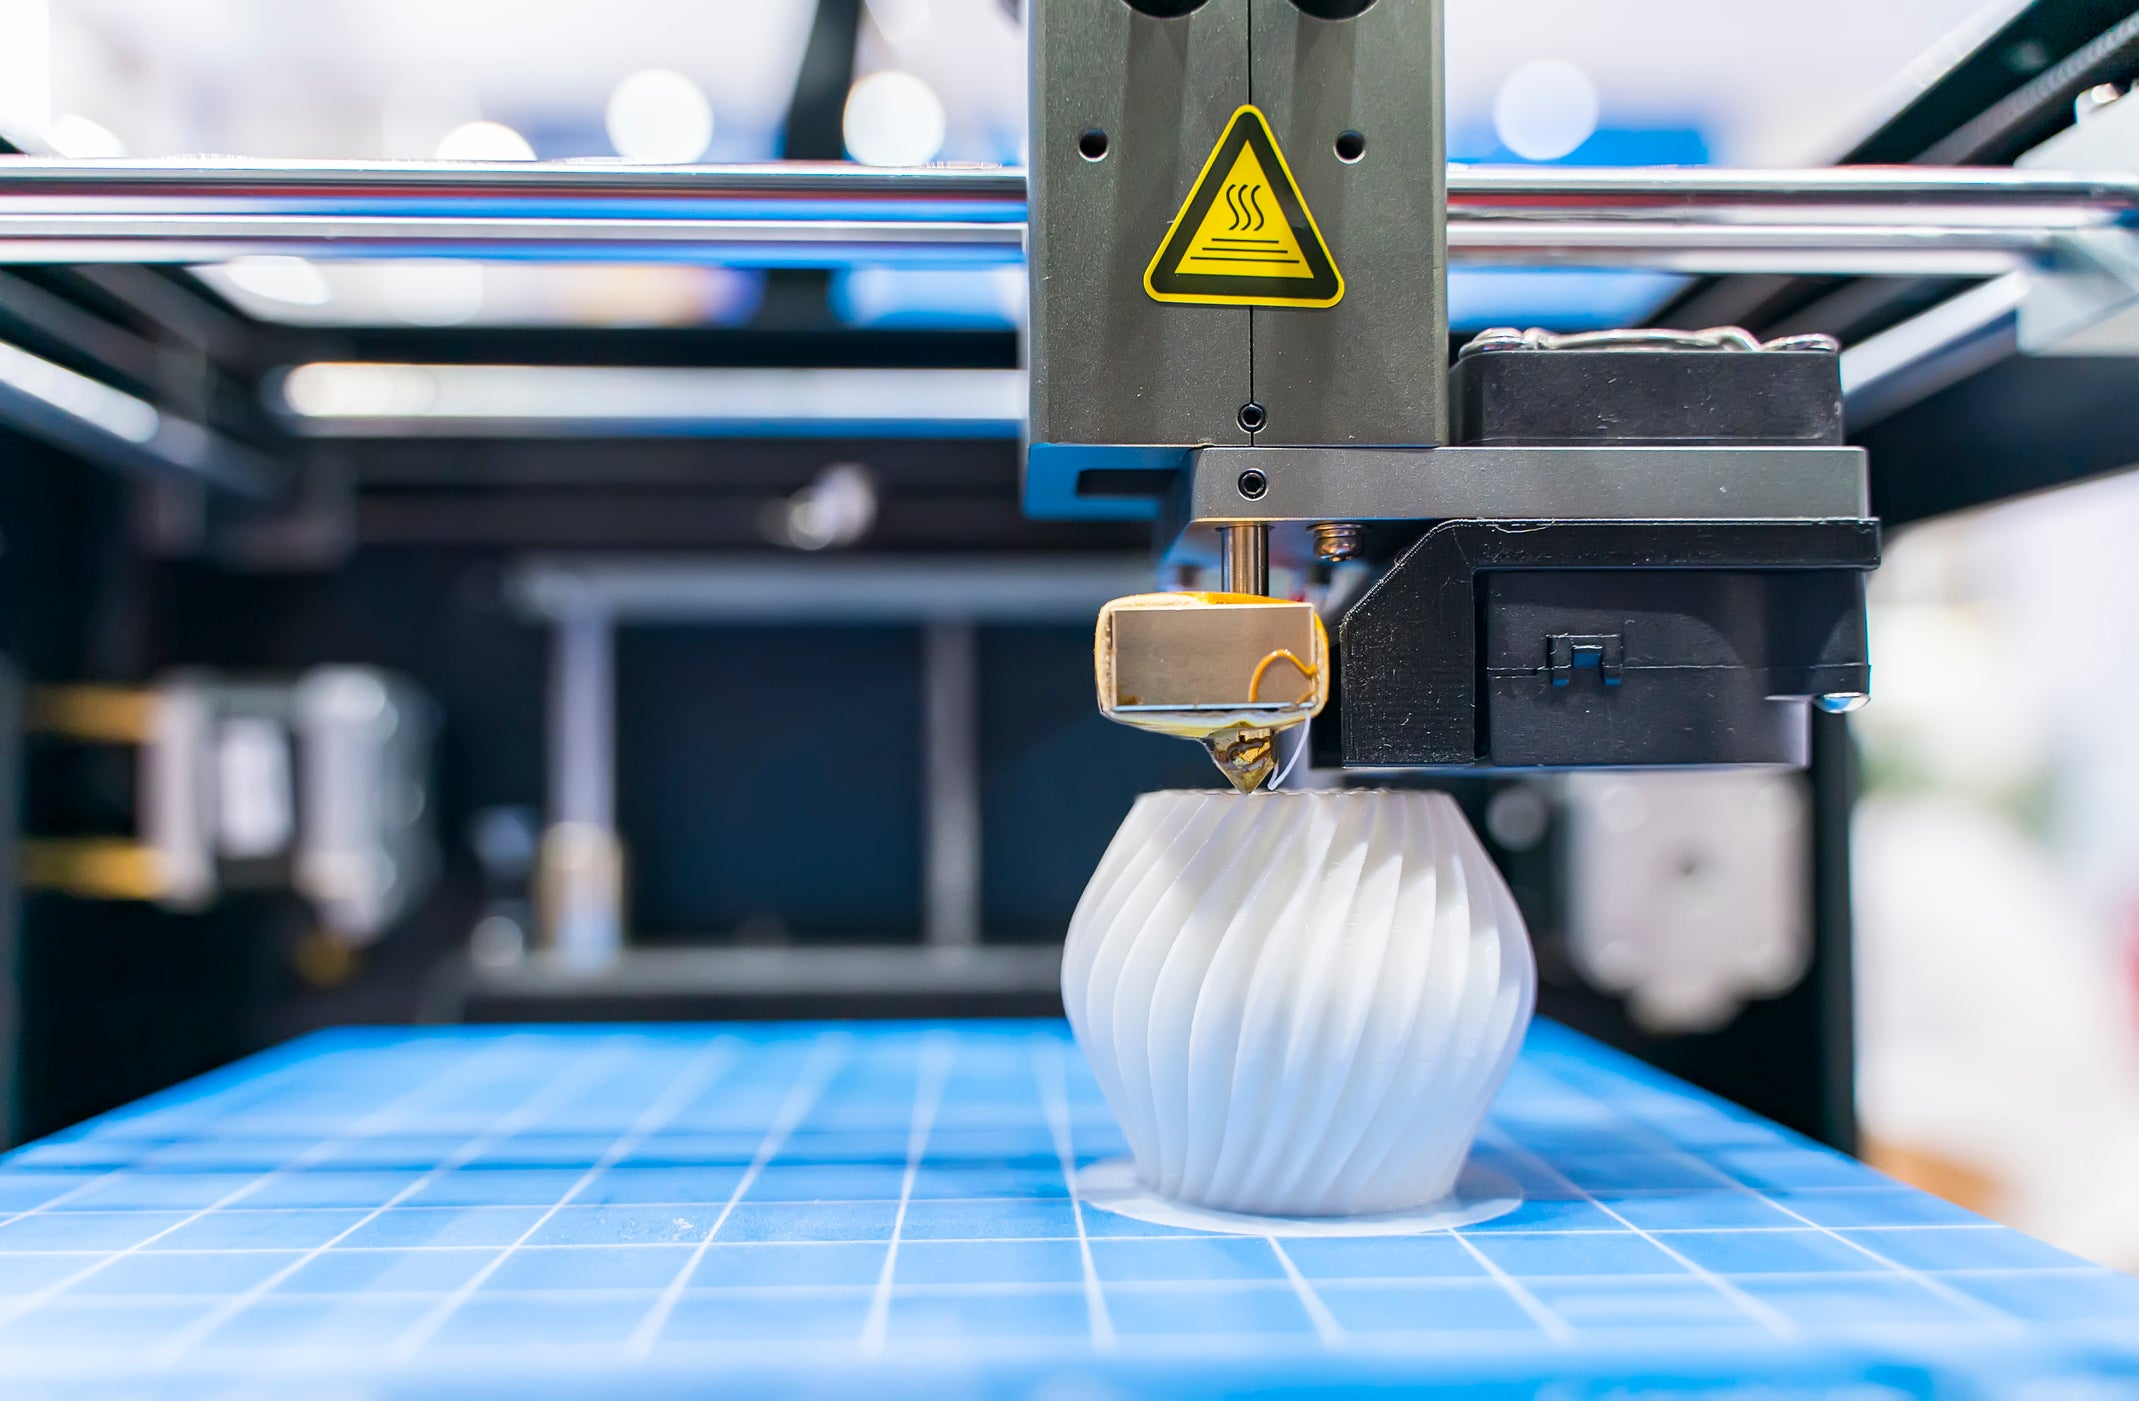 best 3d printing stocks to buy 2020 2021 ddd stock mtls stock ssys stock prlb stock materialise 3d systems